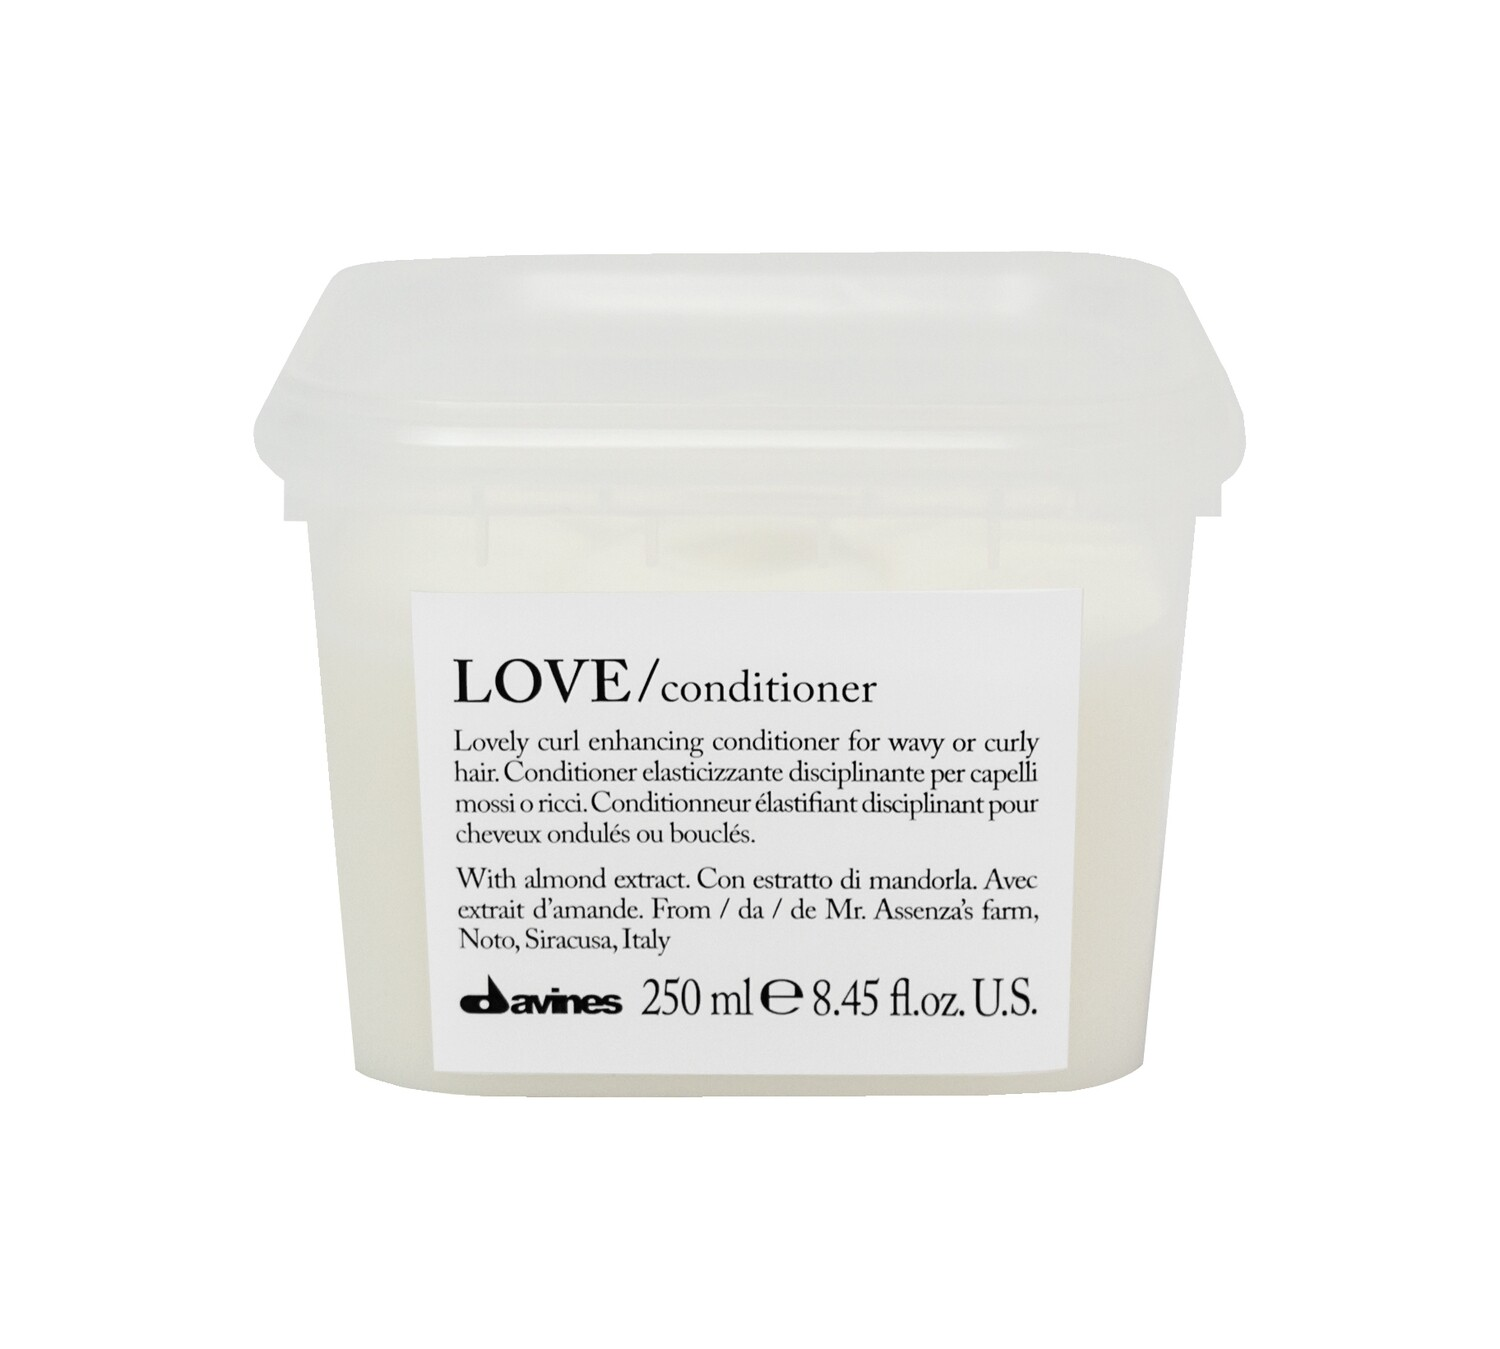 Davines LOVE/Conditioner Curl